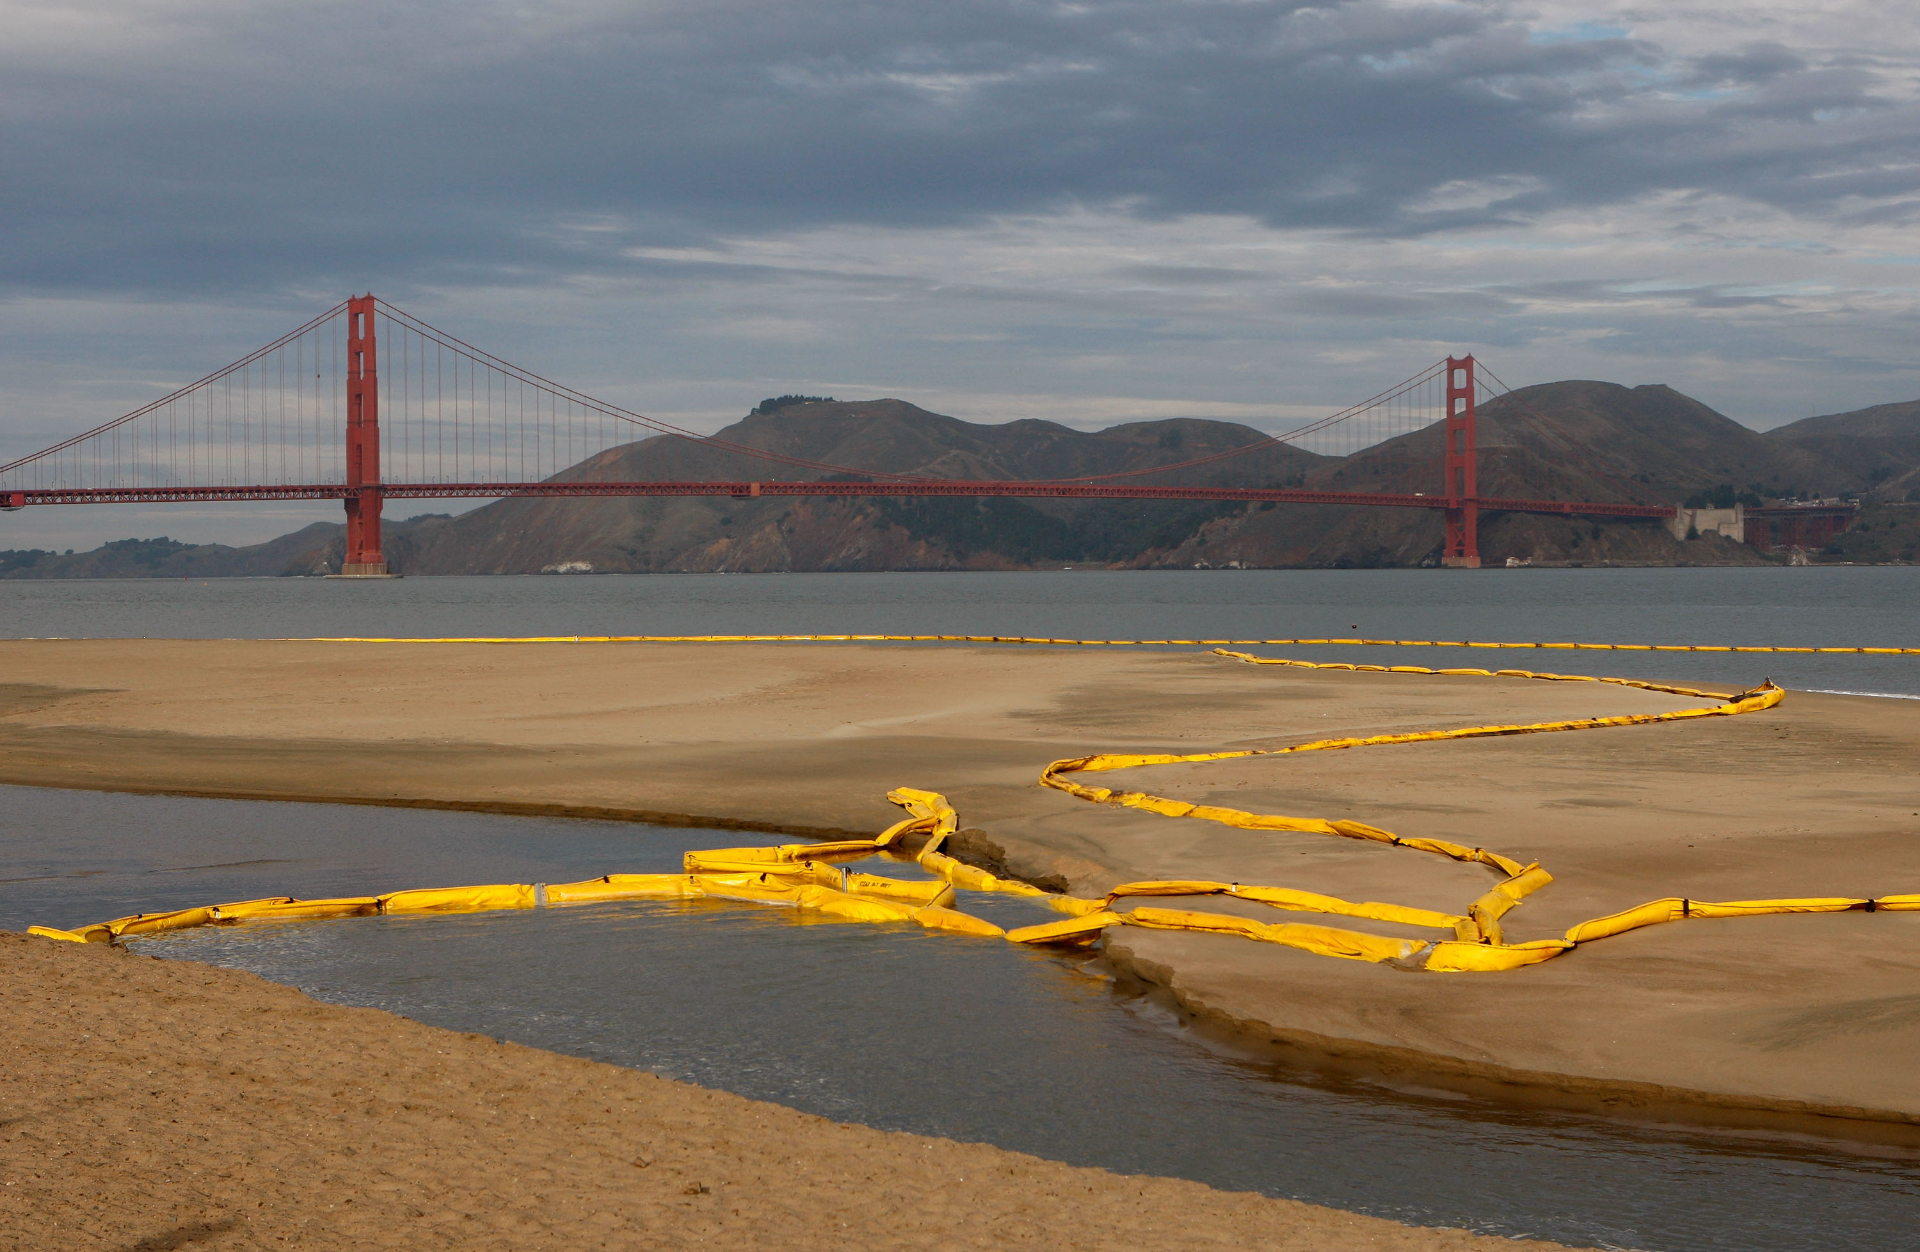 Long yellow inflatables, called booms, are coiled in the water and beach inside the Golden Gate Bridge.